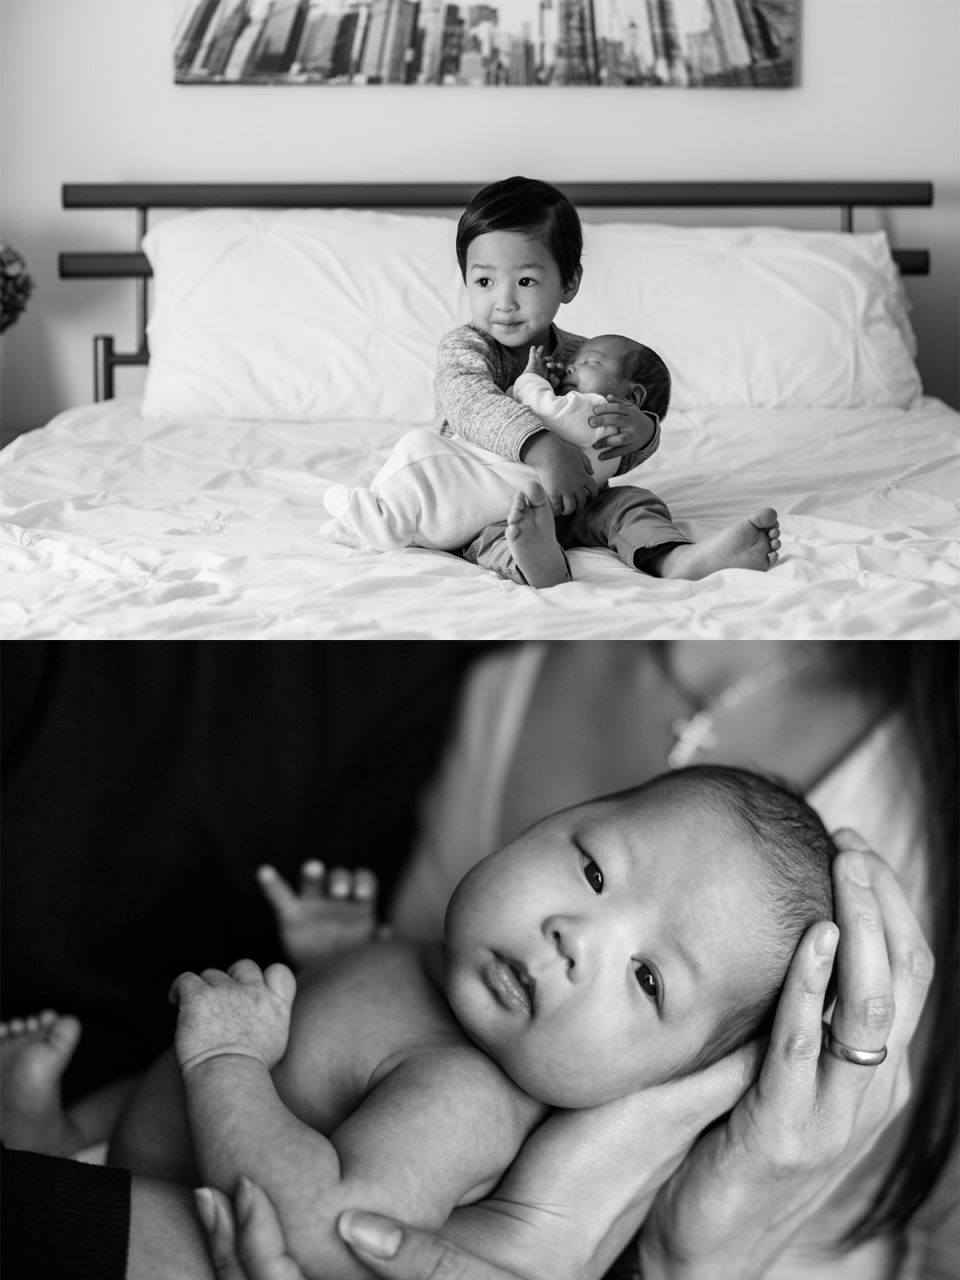 Posted in babies familytags award winning photographer bw photography bw portraits baby photographer balmain baby photography family photographer